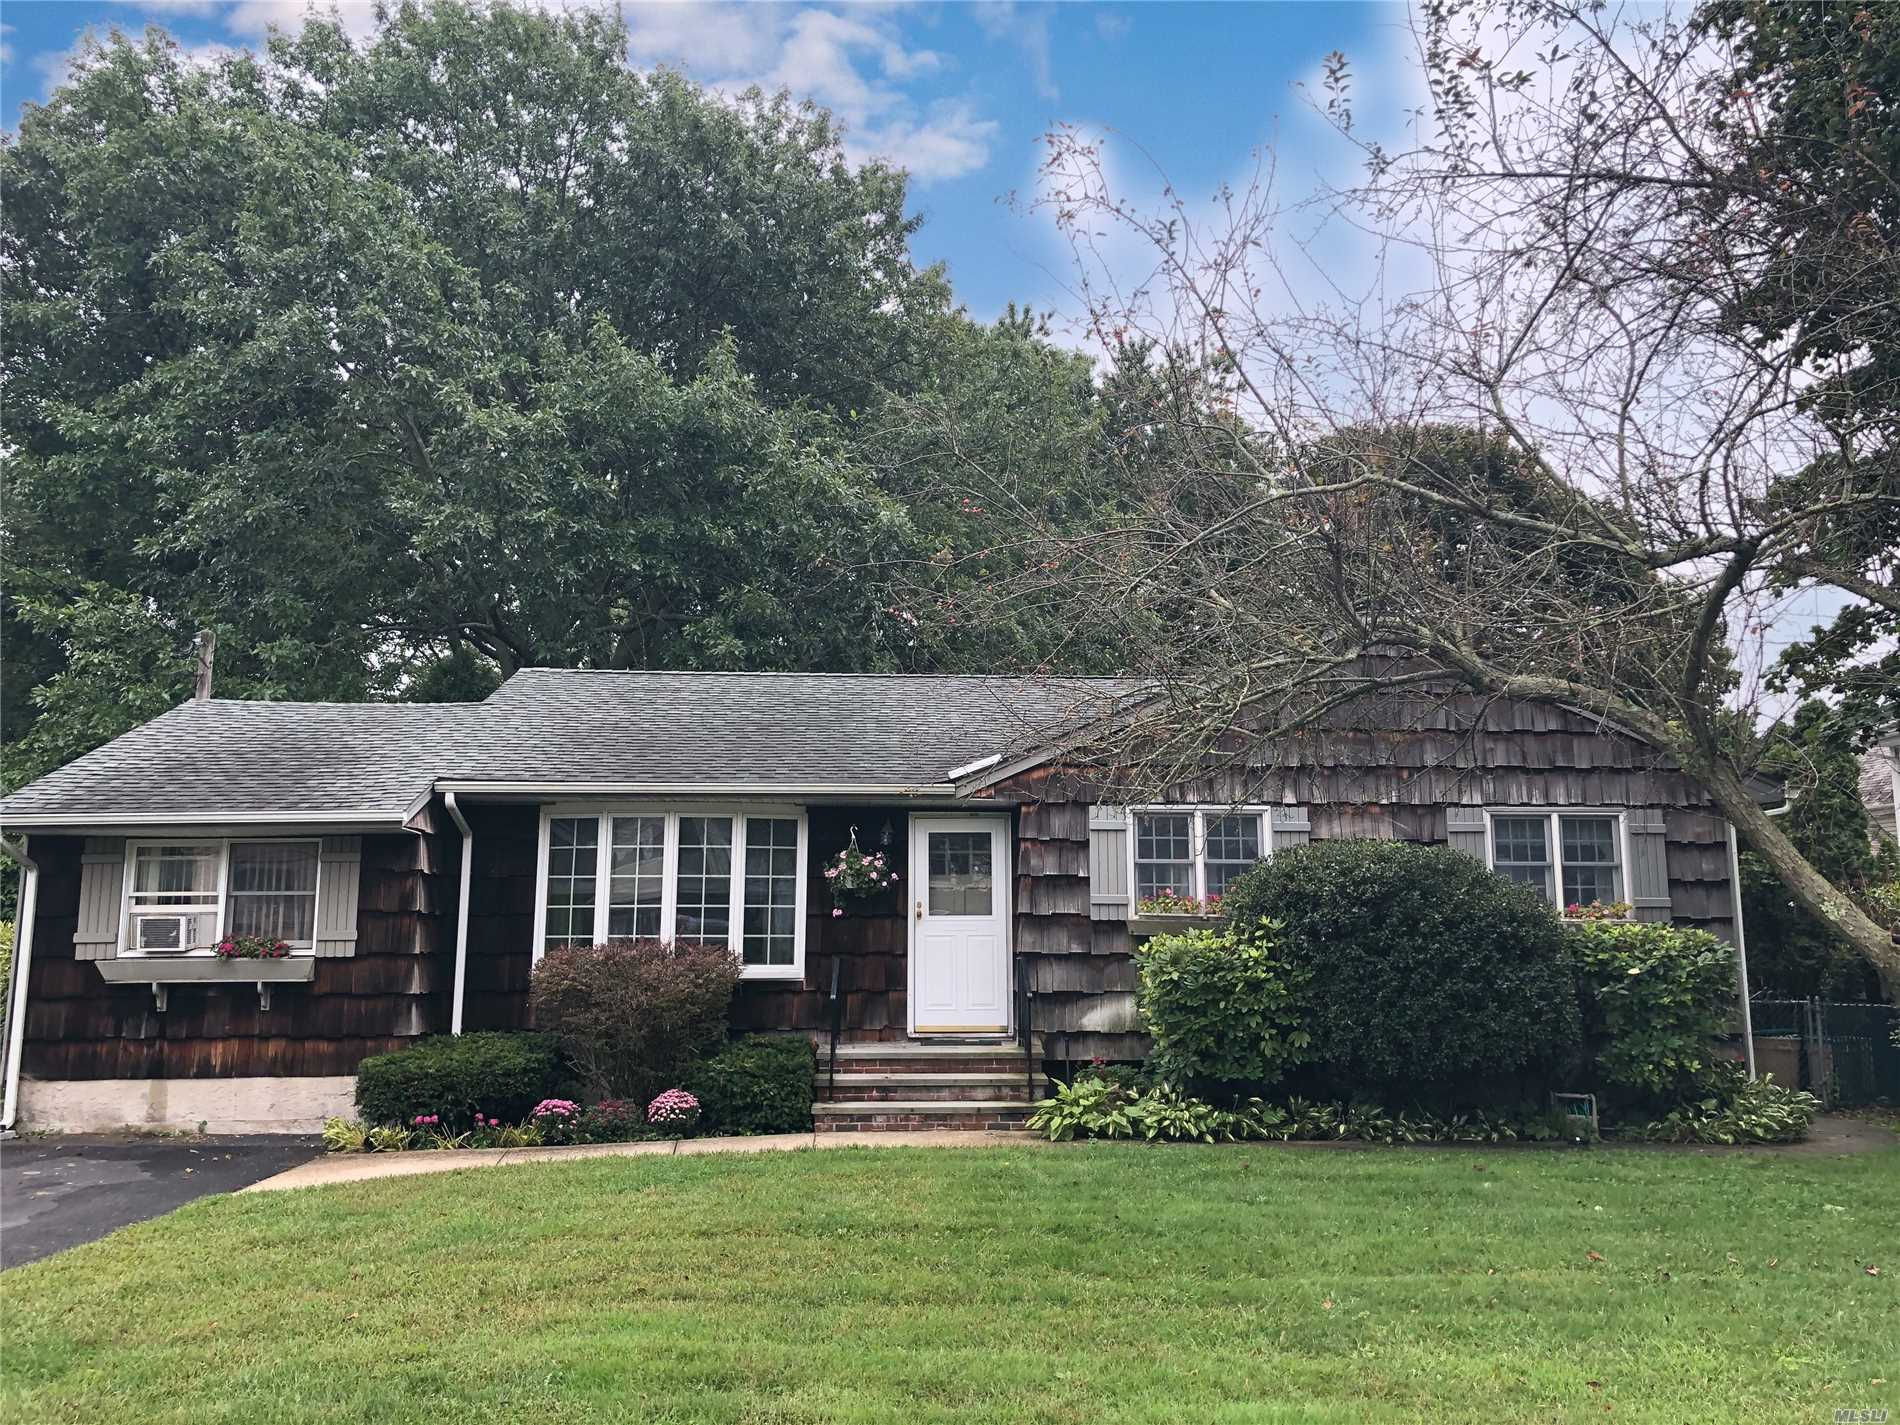 Wideline Exp Ranch Nestled On Over 1/2 Acre Of Property In Renown Sayville School District. Hardwood Floors, King Size Master Bedroom, Full Basement, Come Make This Your Own.